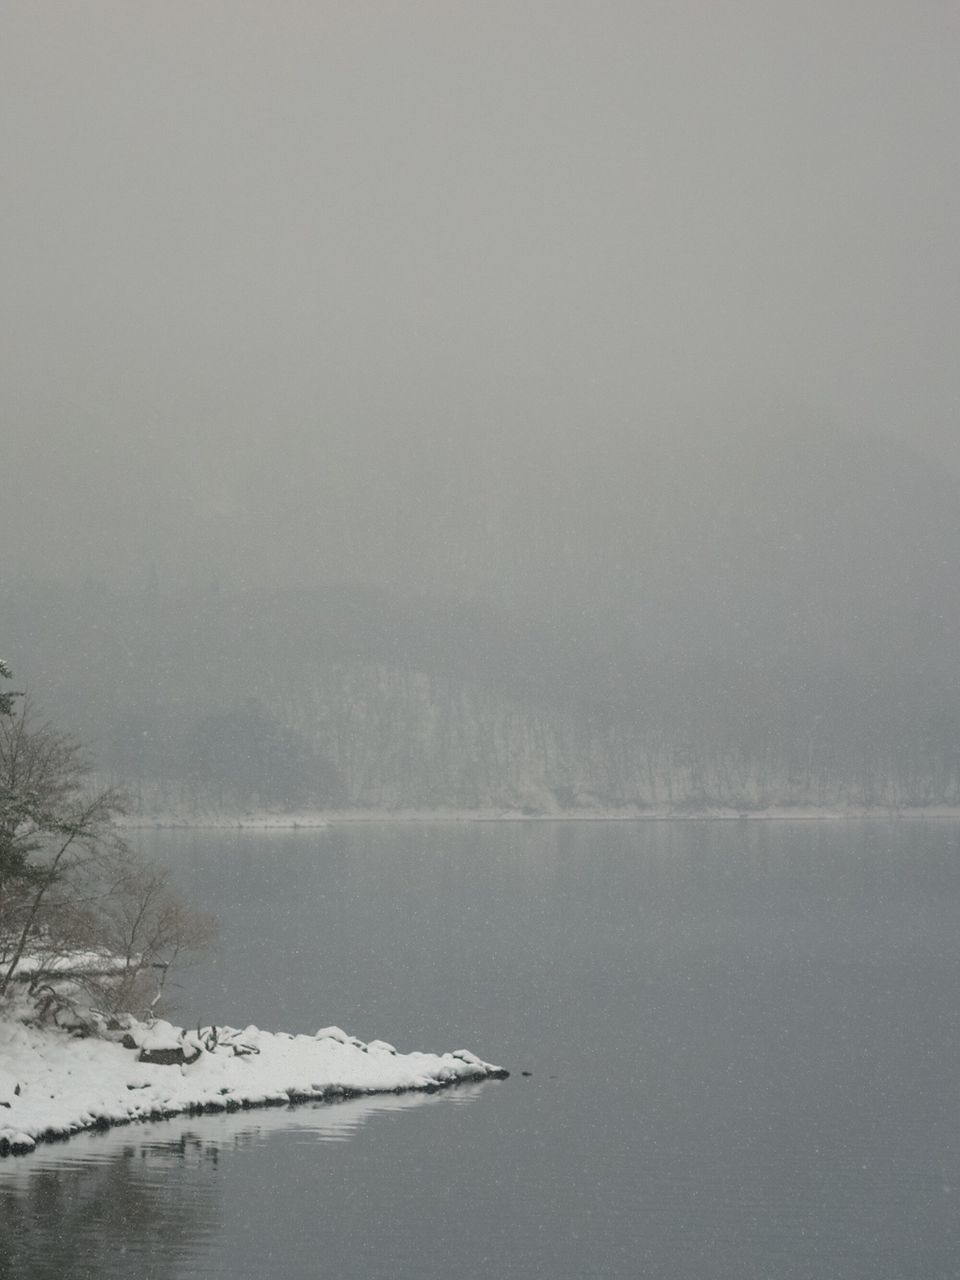 winter, cold temperature, nature, snow, tranquility, weather, tranquil scene, beauty in nature, scenics, outdoors, no people, day, landscape, fog, water, sky, tree